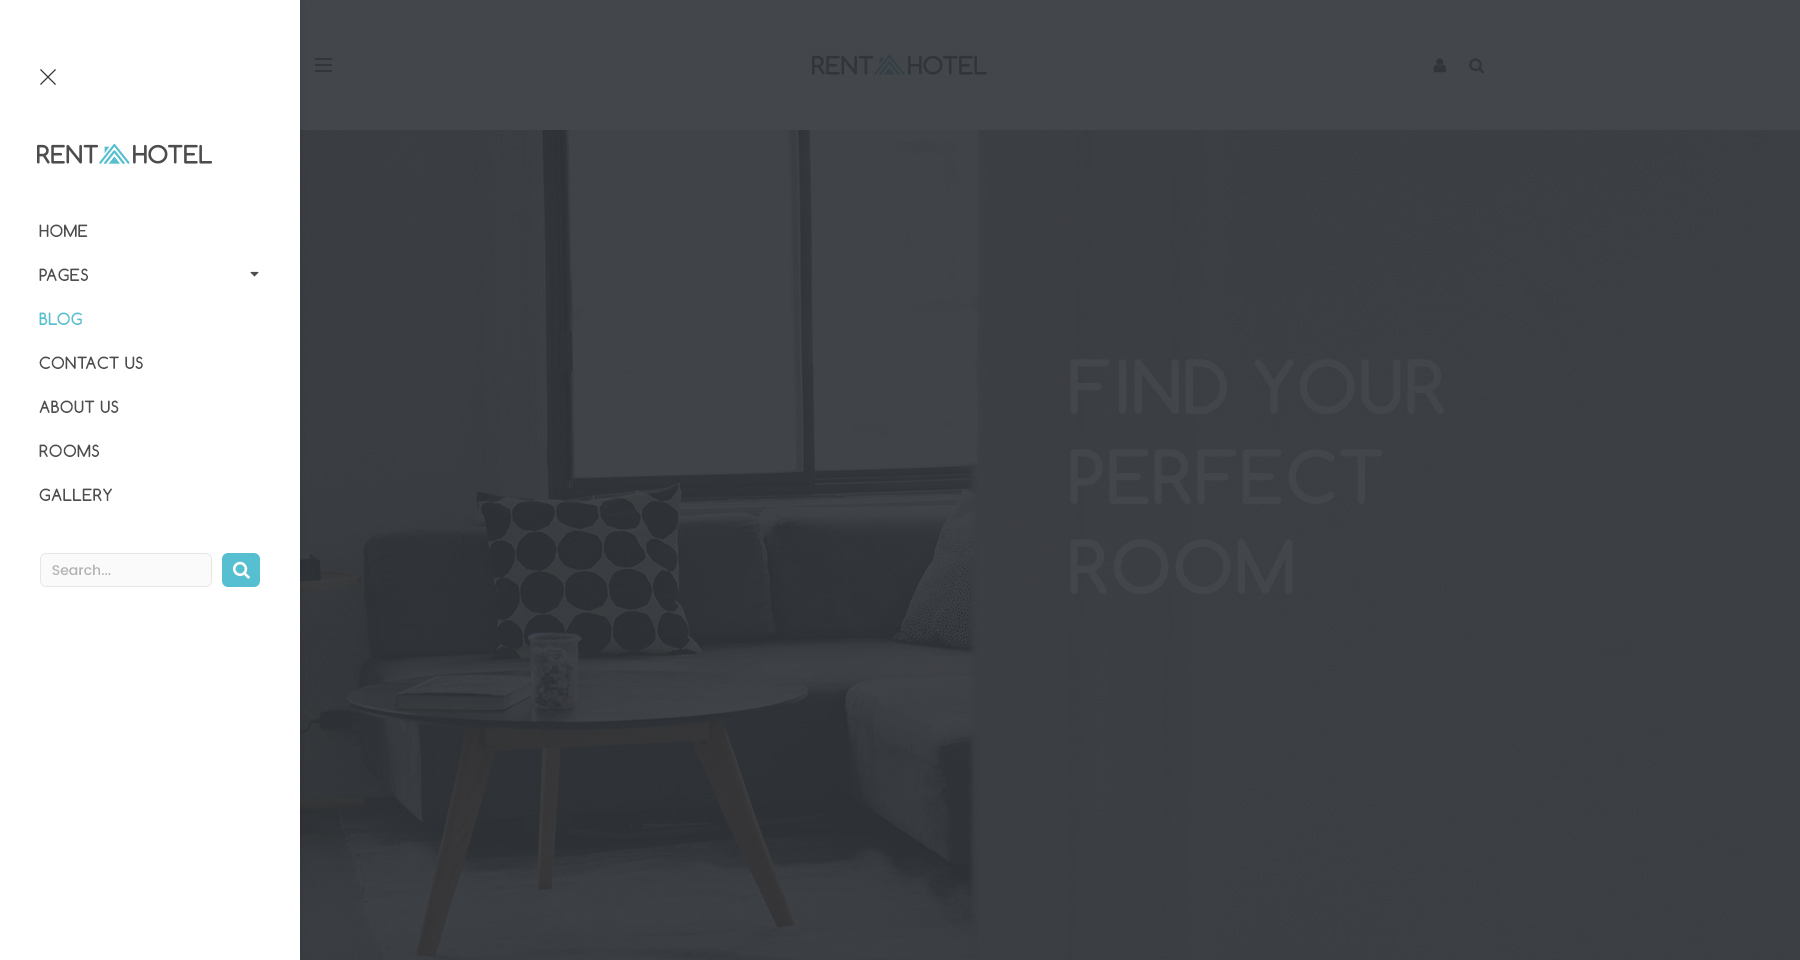 Rent a Hotel - Hostel & Guest House Booking Website PSD Template by ...